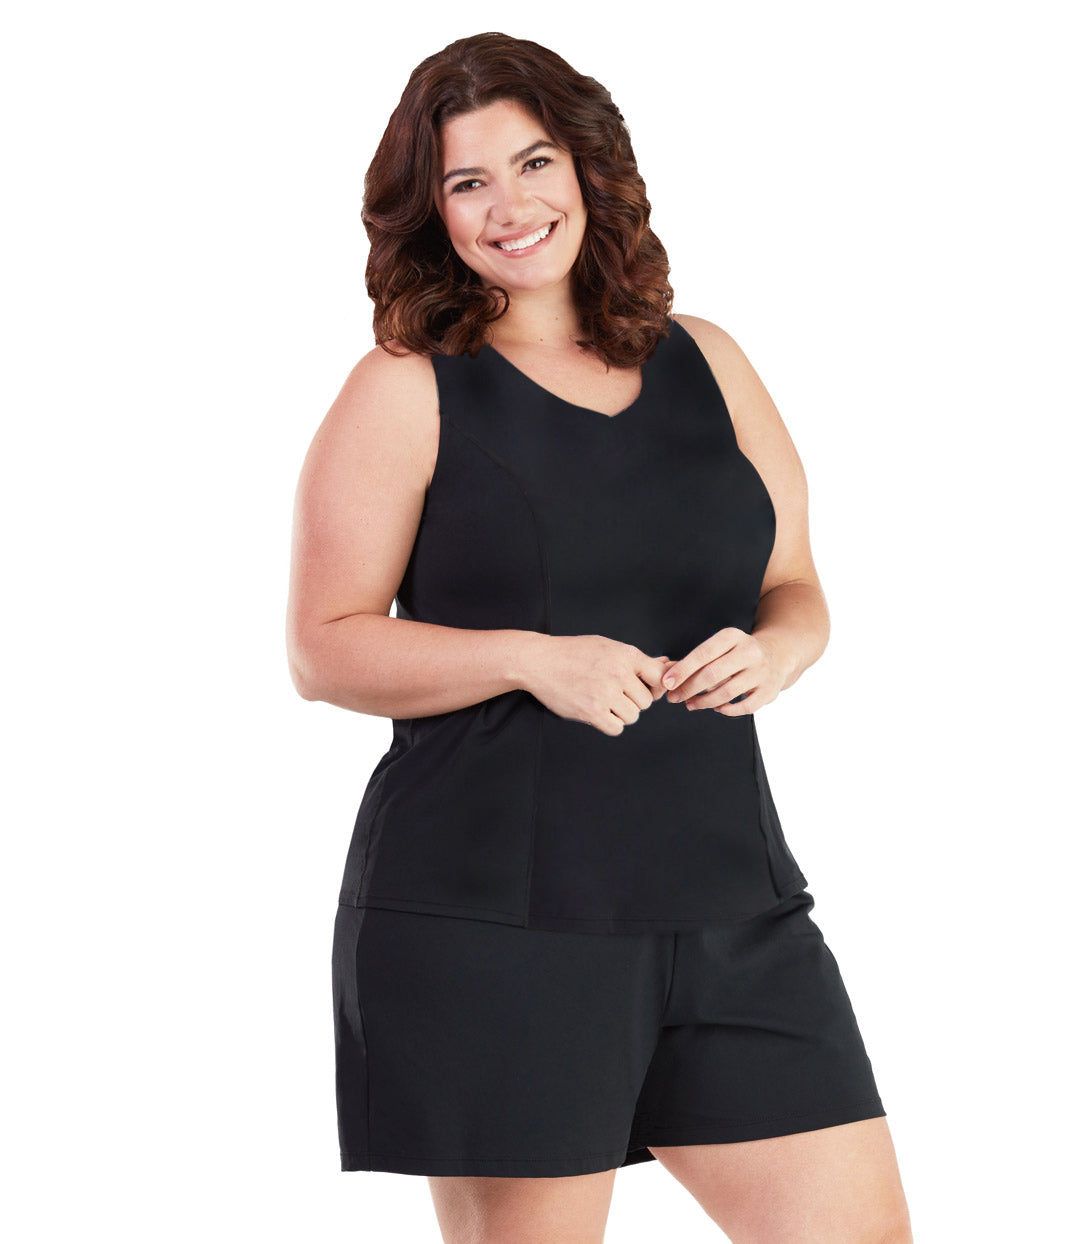 AquaSport™ Tankini Top in Black-Plus Size Swimwear and Swim Separates-SFO Apparel-JunoActive